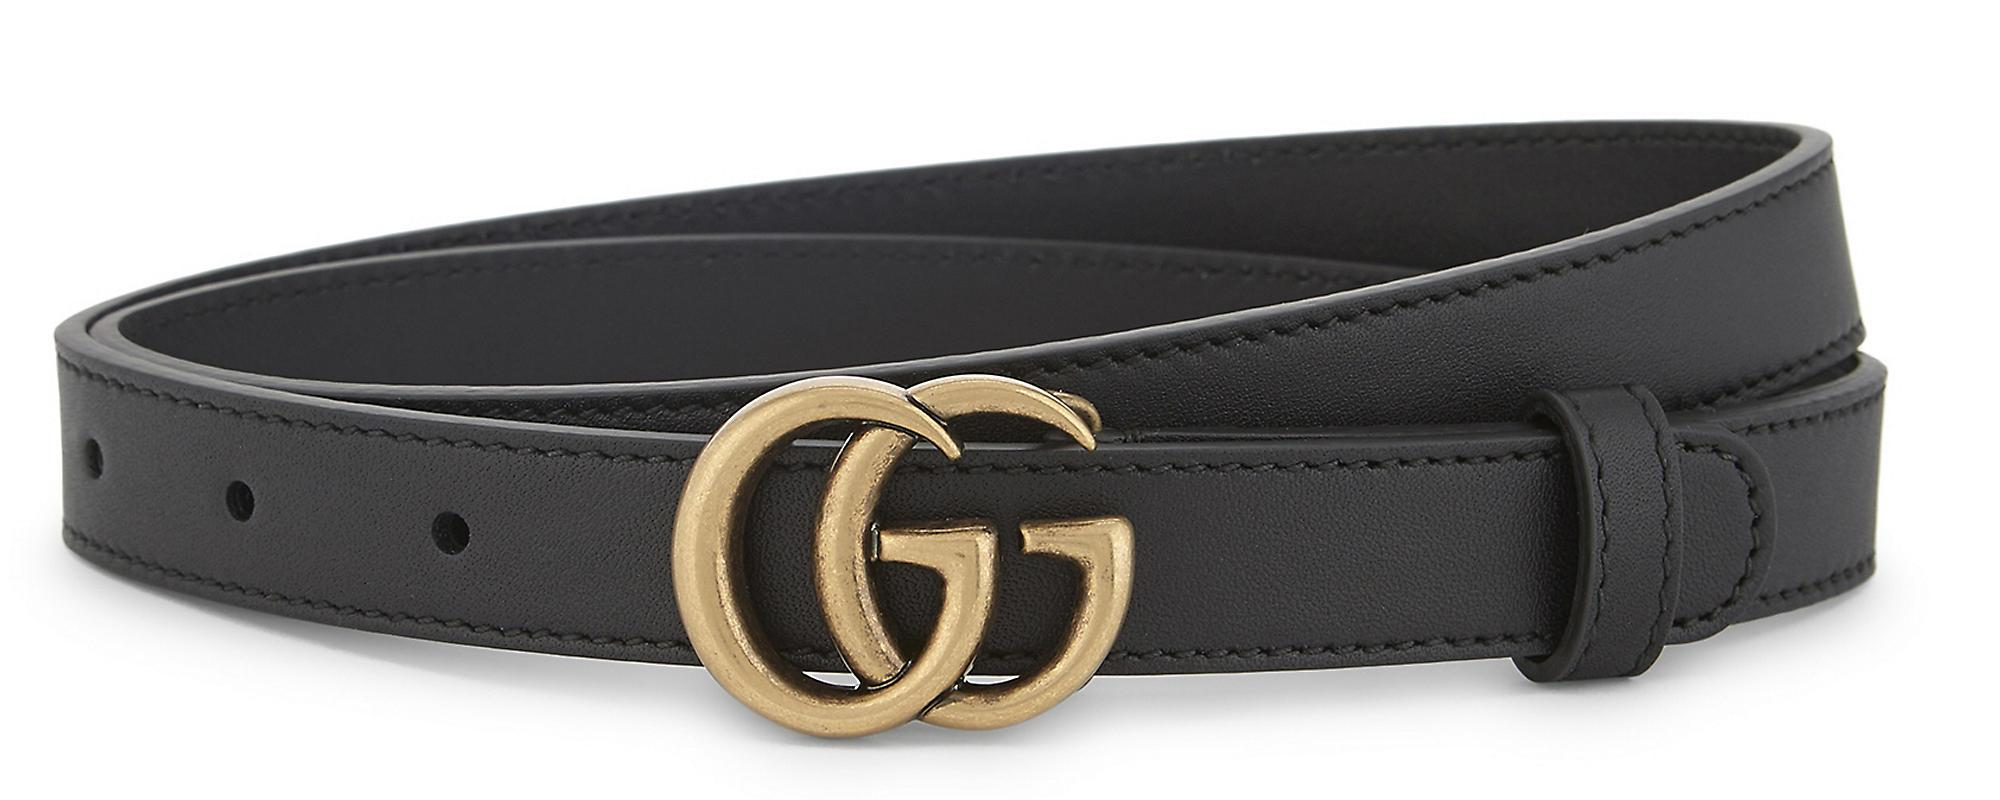 d46cd9f0901 Lyst - Gucci GG Buckle Slim Leather Belt in Black - Save 21%